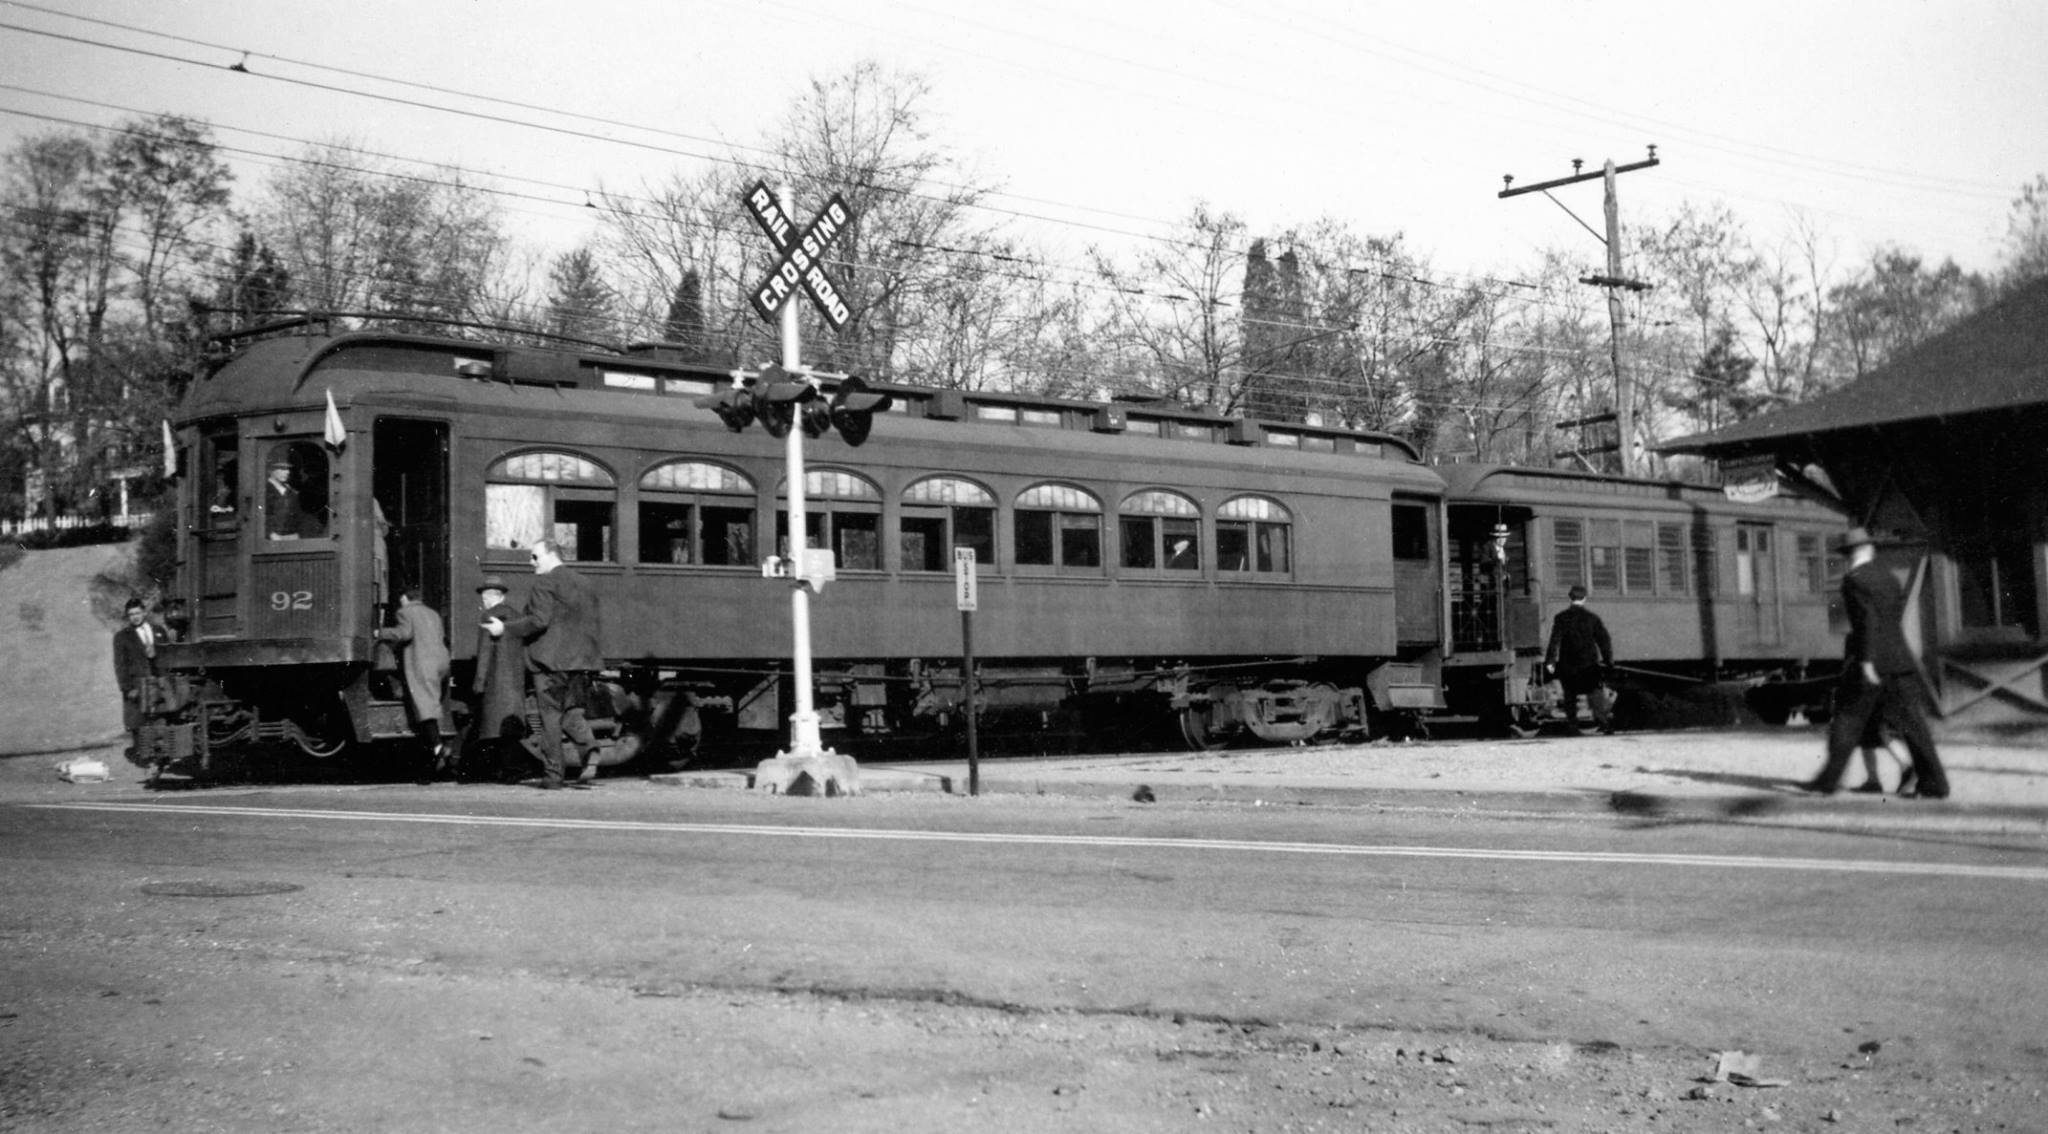 Baltimore & Annapolis Railroad Car #92 at Linthicum Station. Date: November 18, 1941. Source: Charles Wagner Collection.